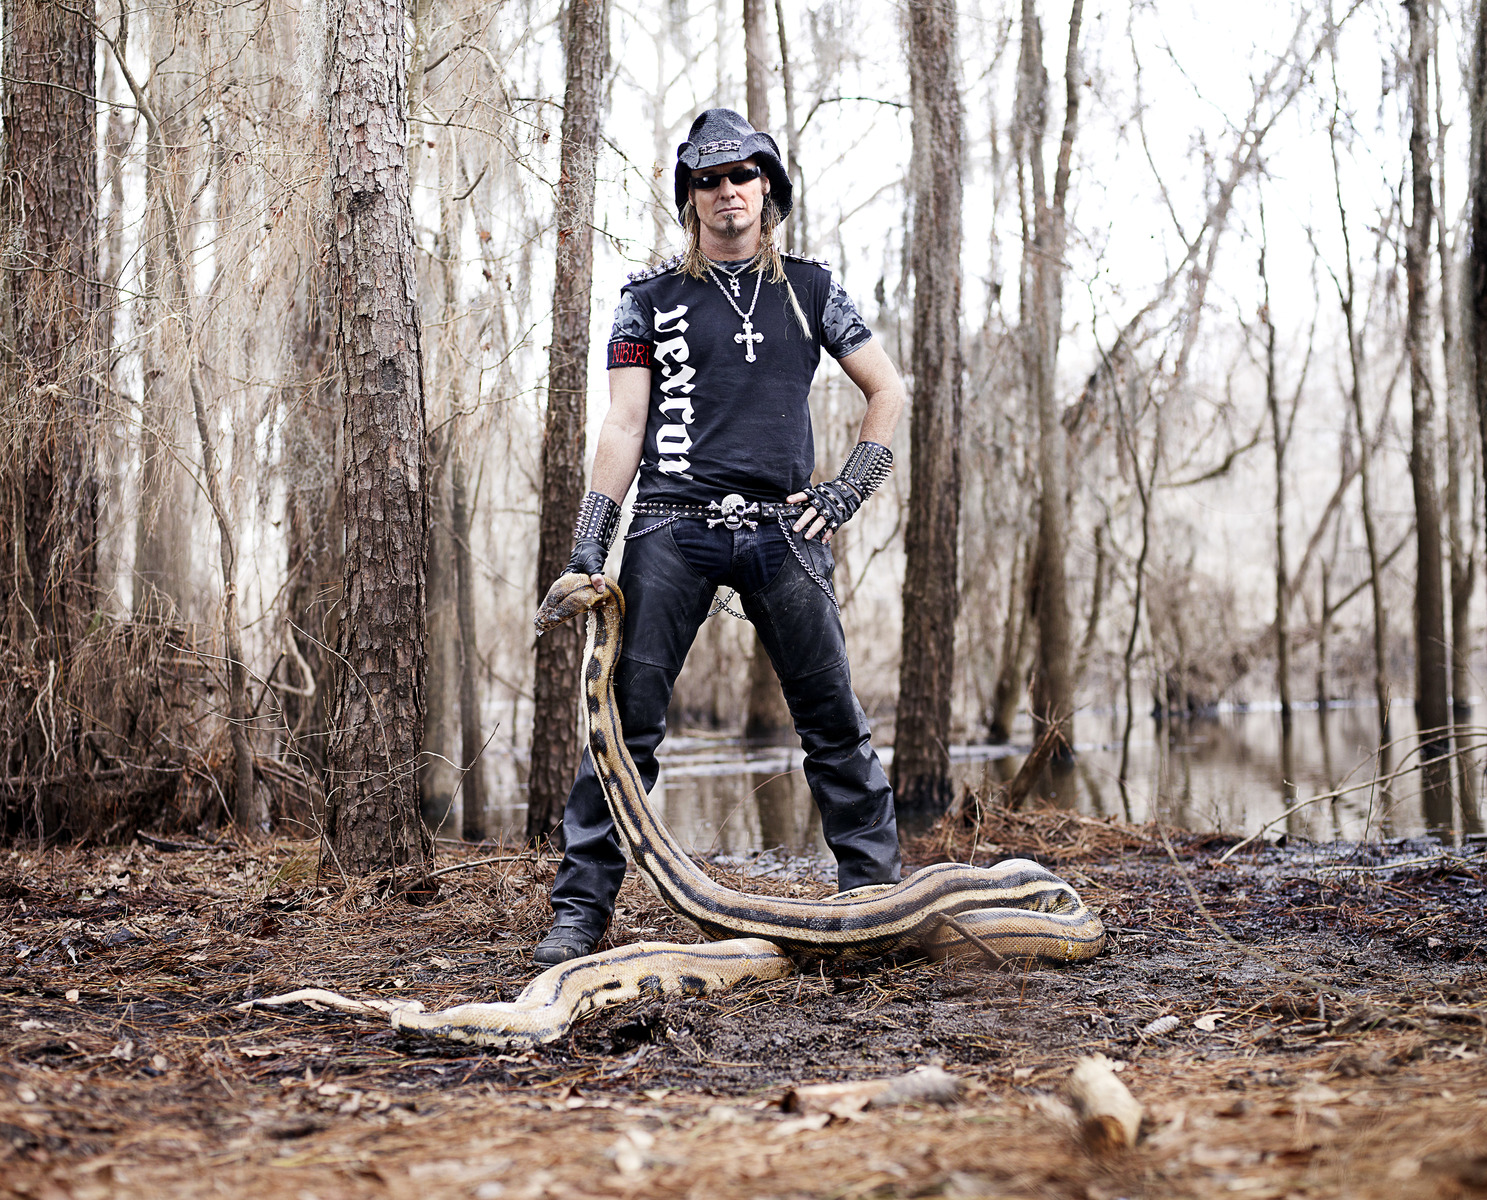 Billy 'The Exterminator' Bretherton